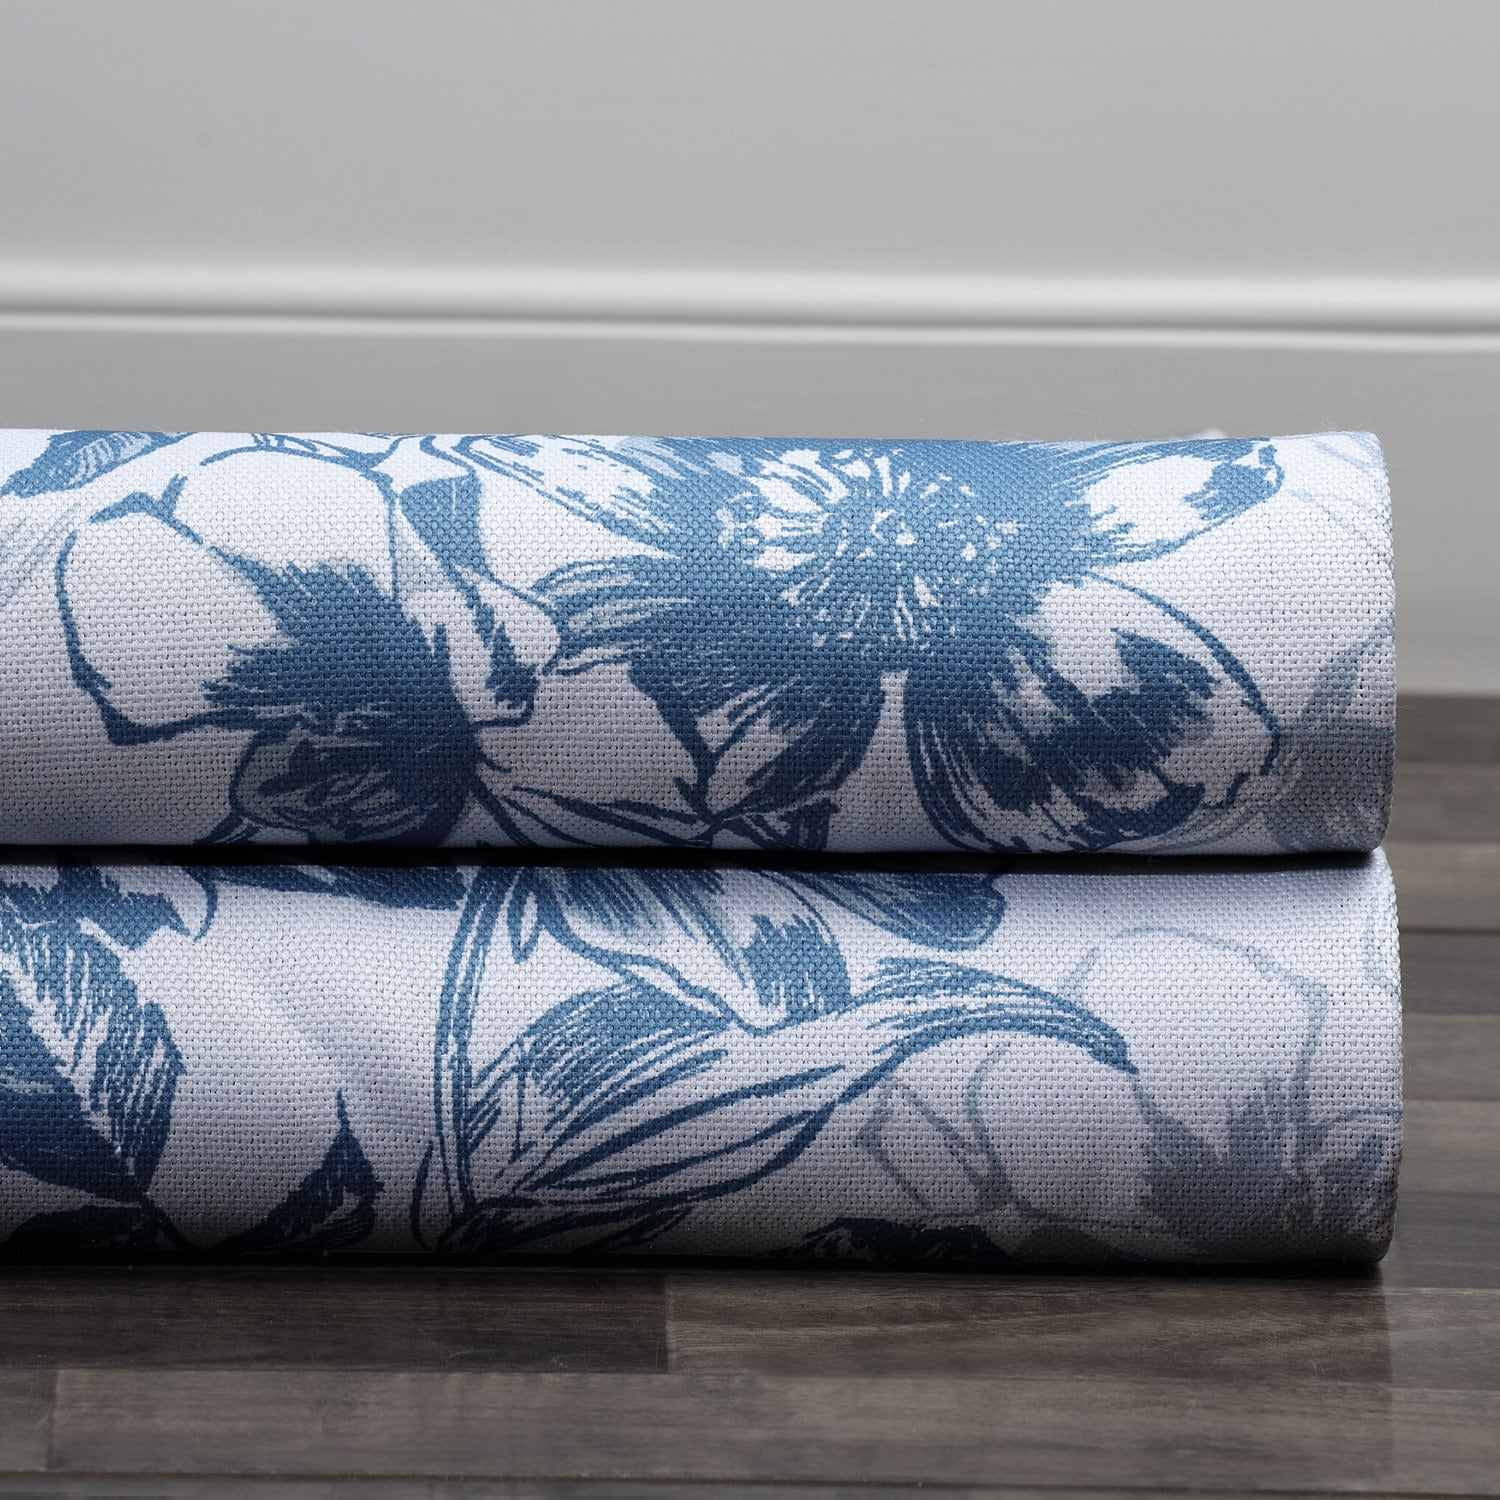 Blue Poppy Printed Linen Textured Blackout Swatch